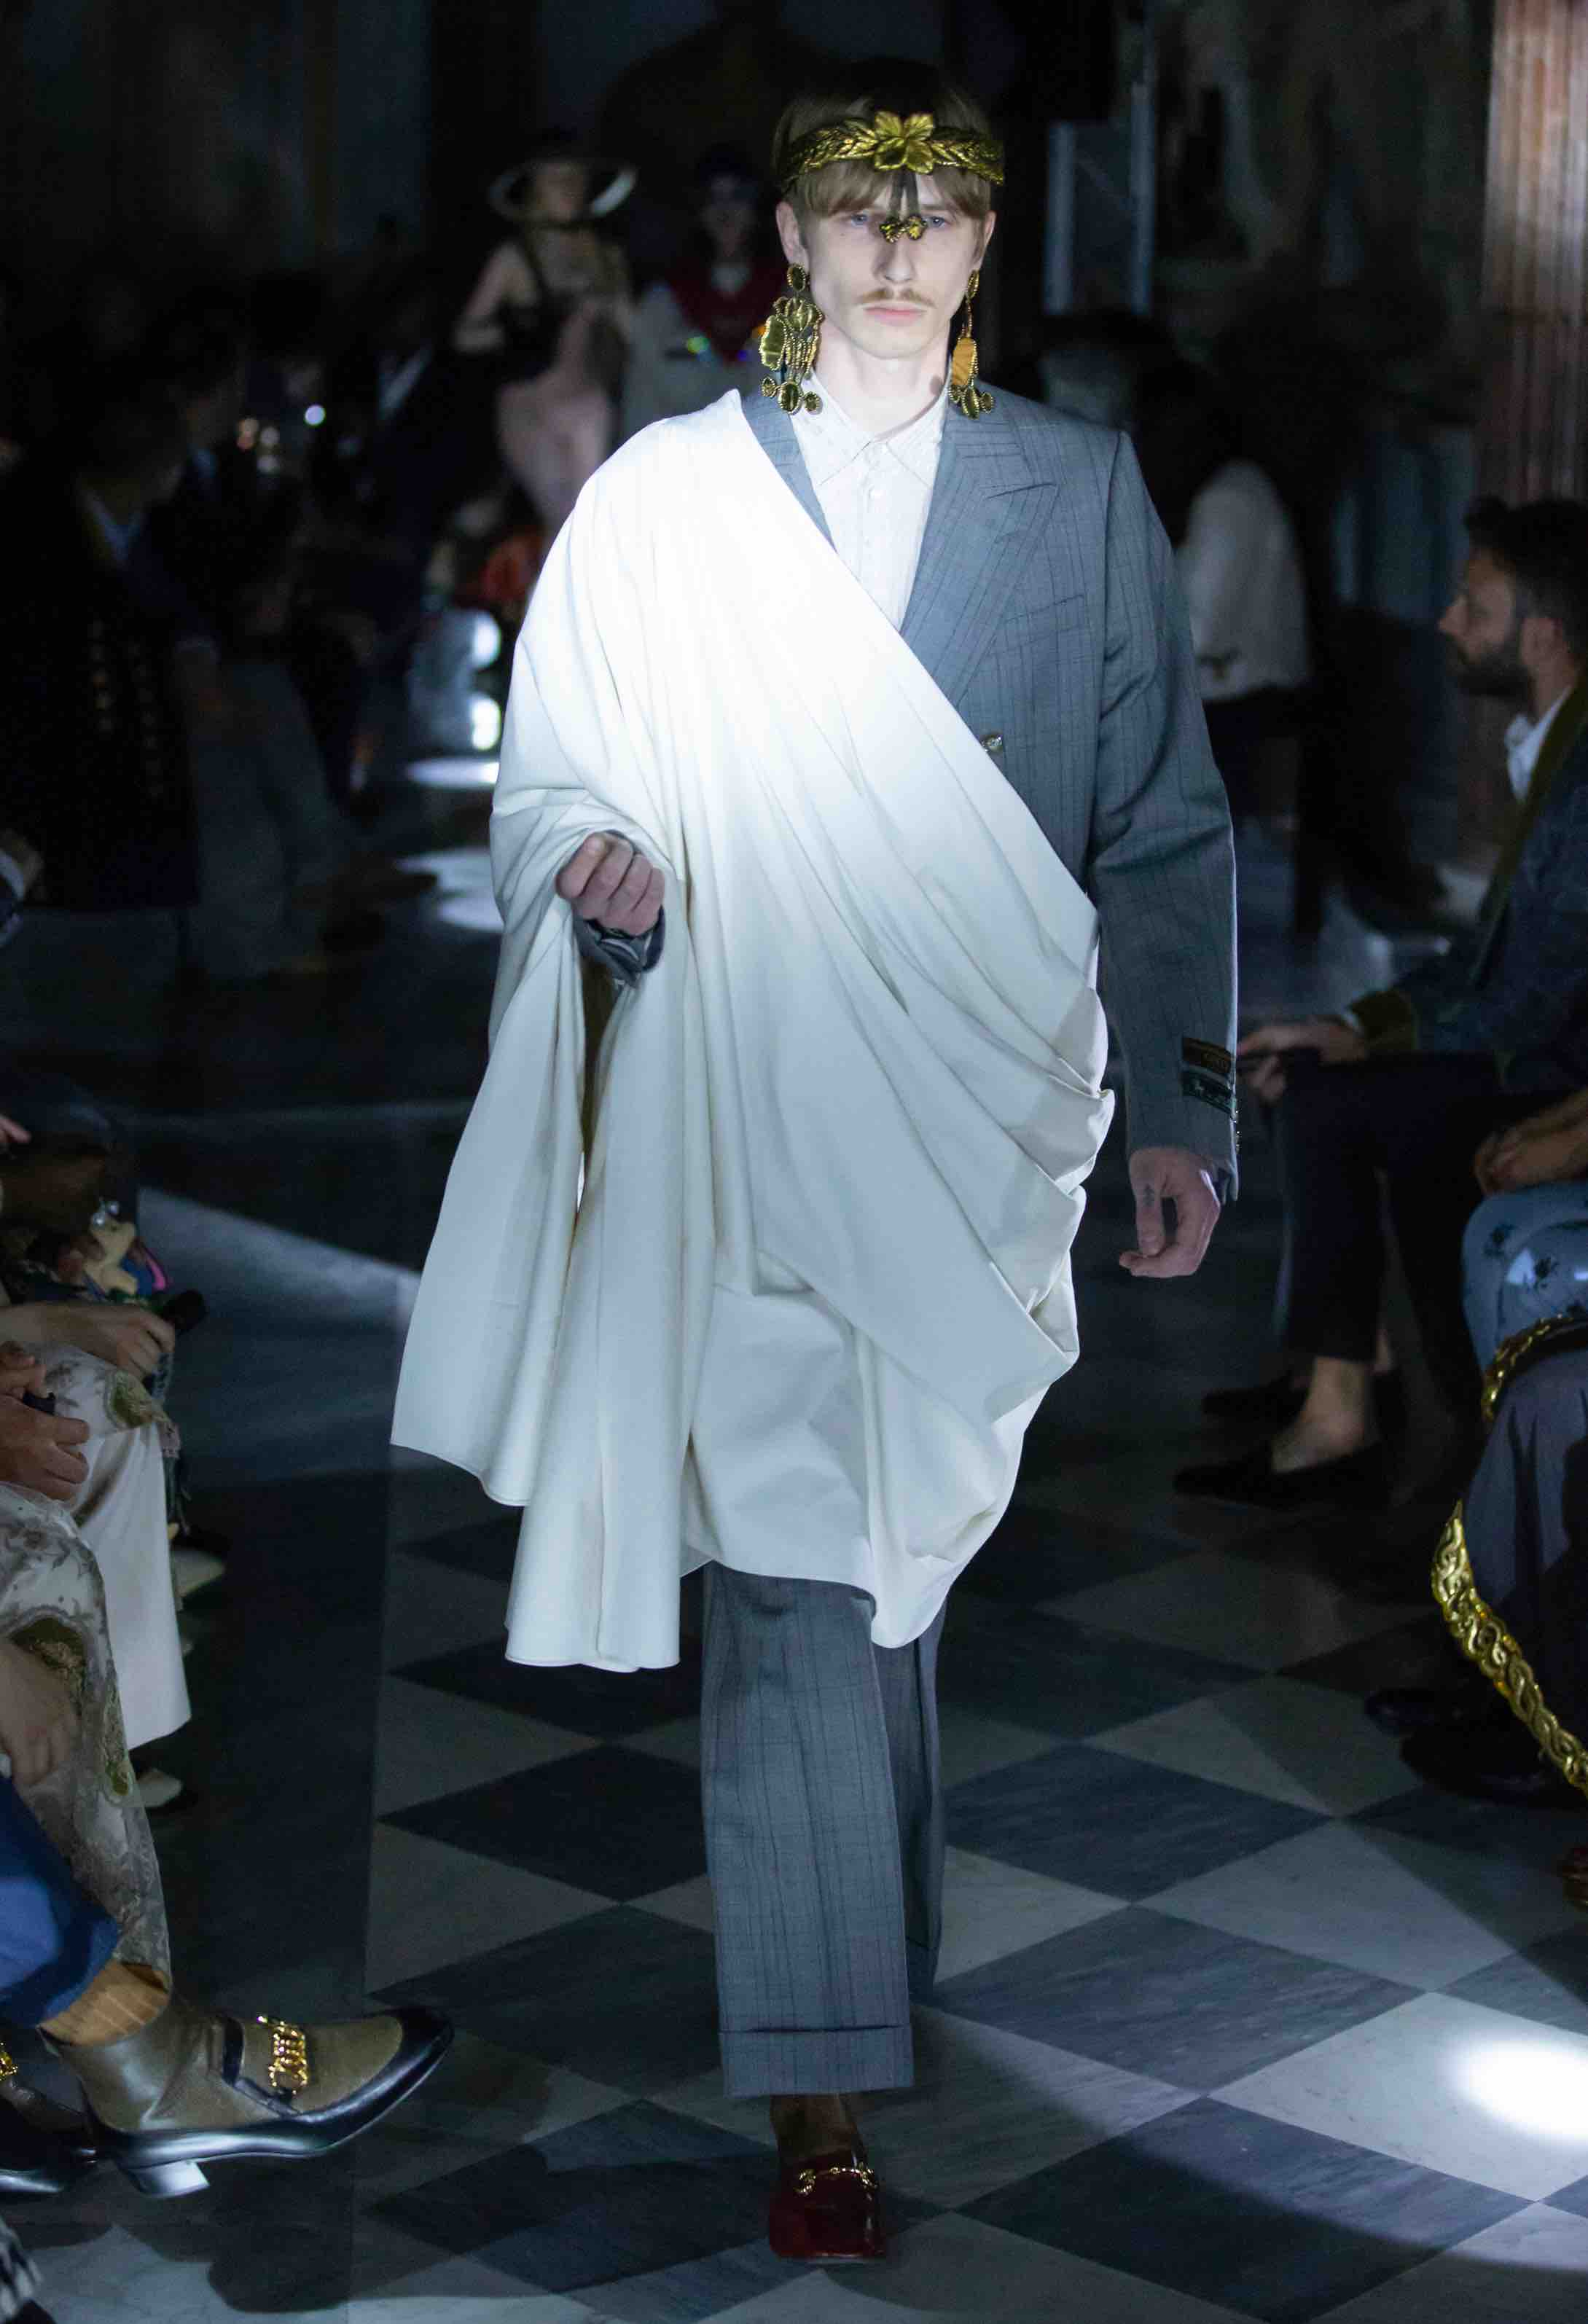 gucci toga suit cruise 2020